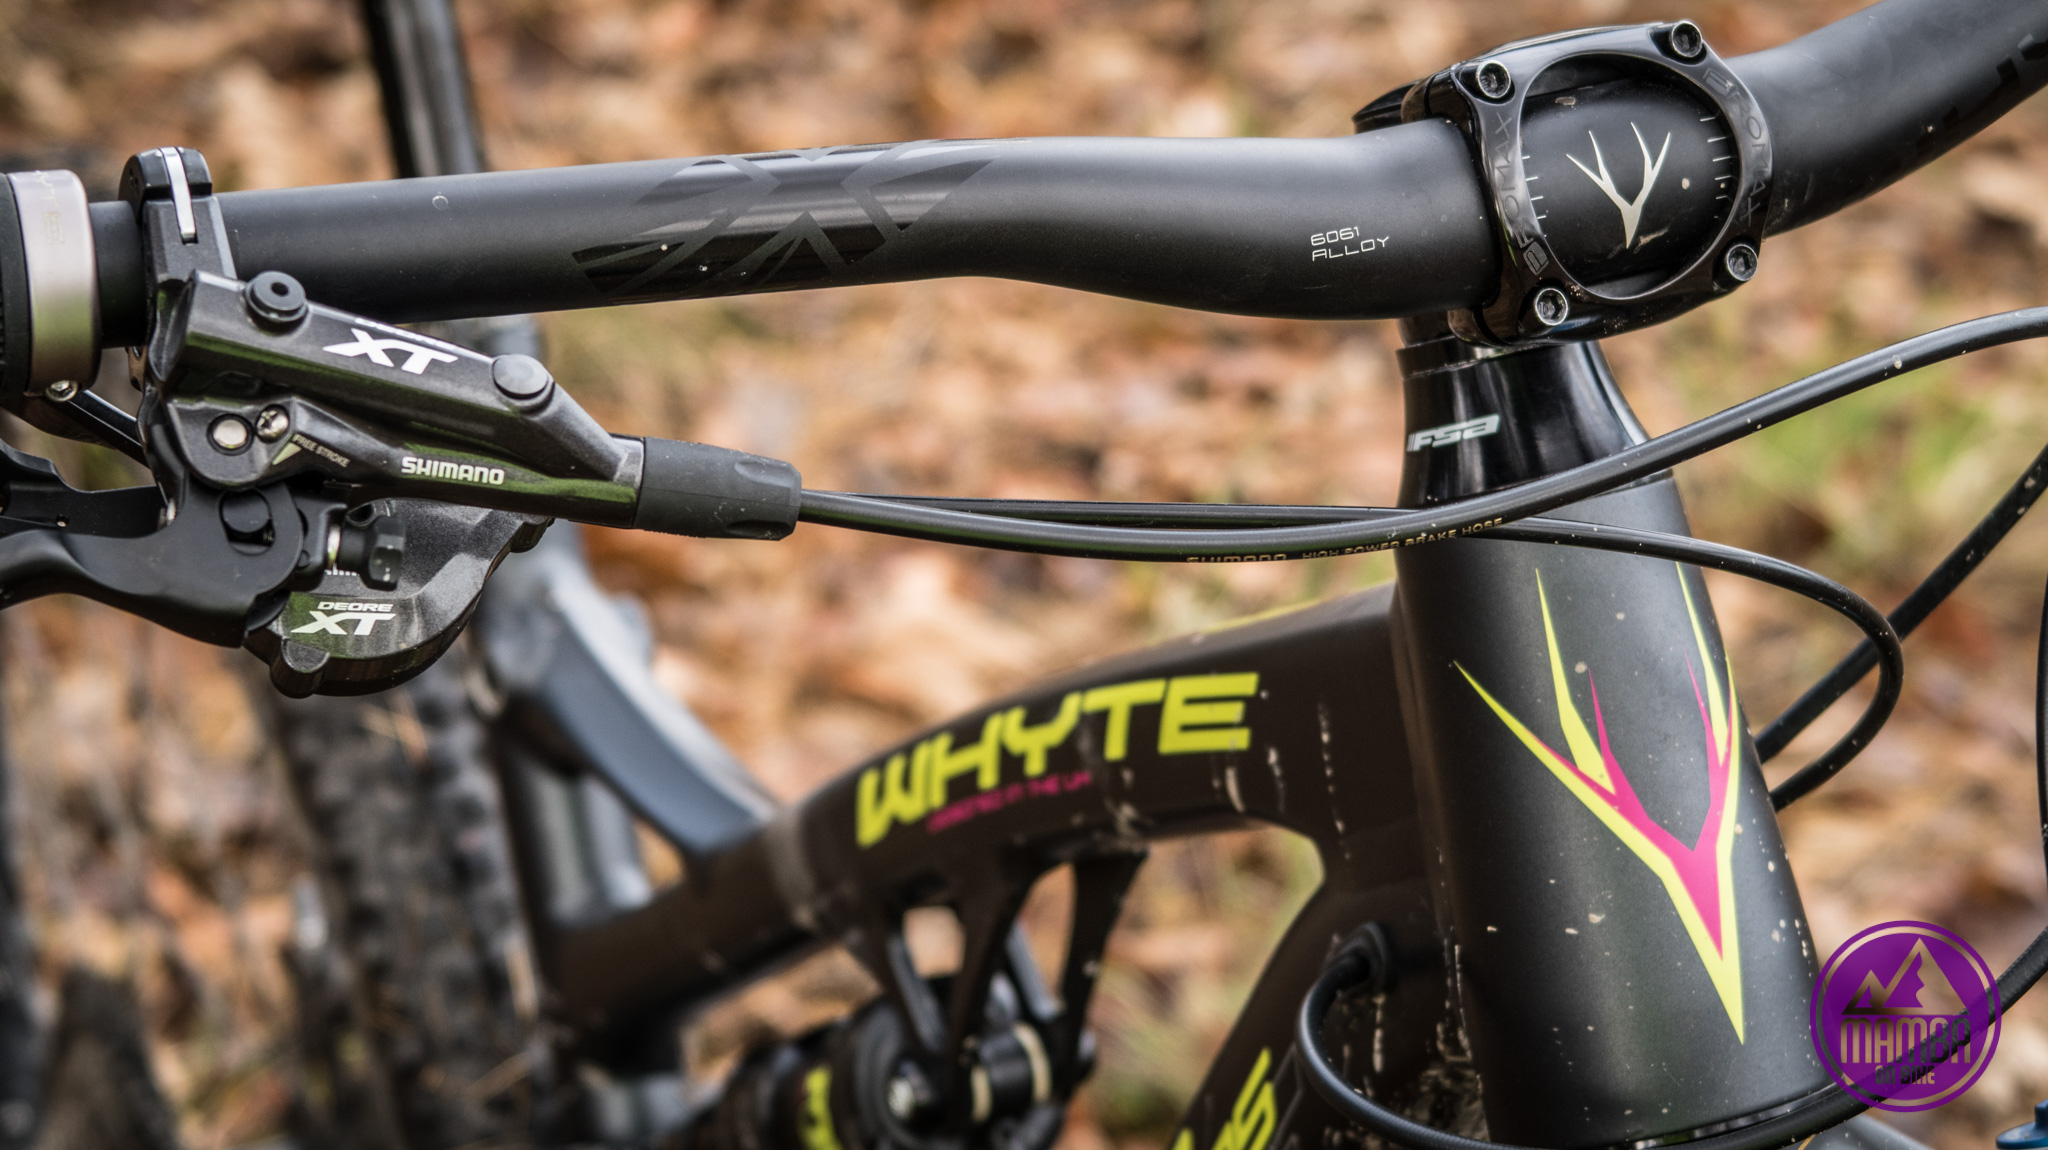 whyte-t130-7337